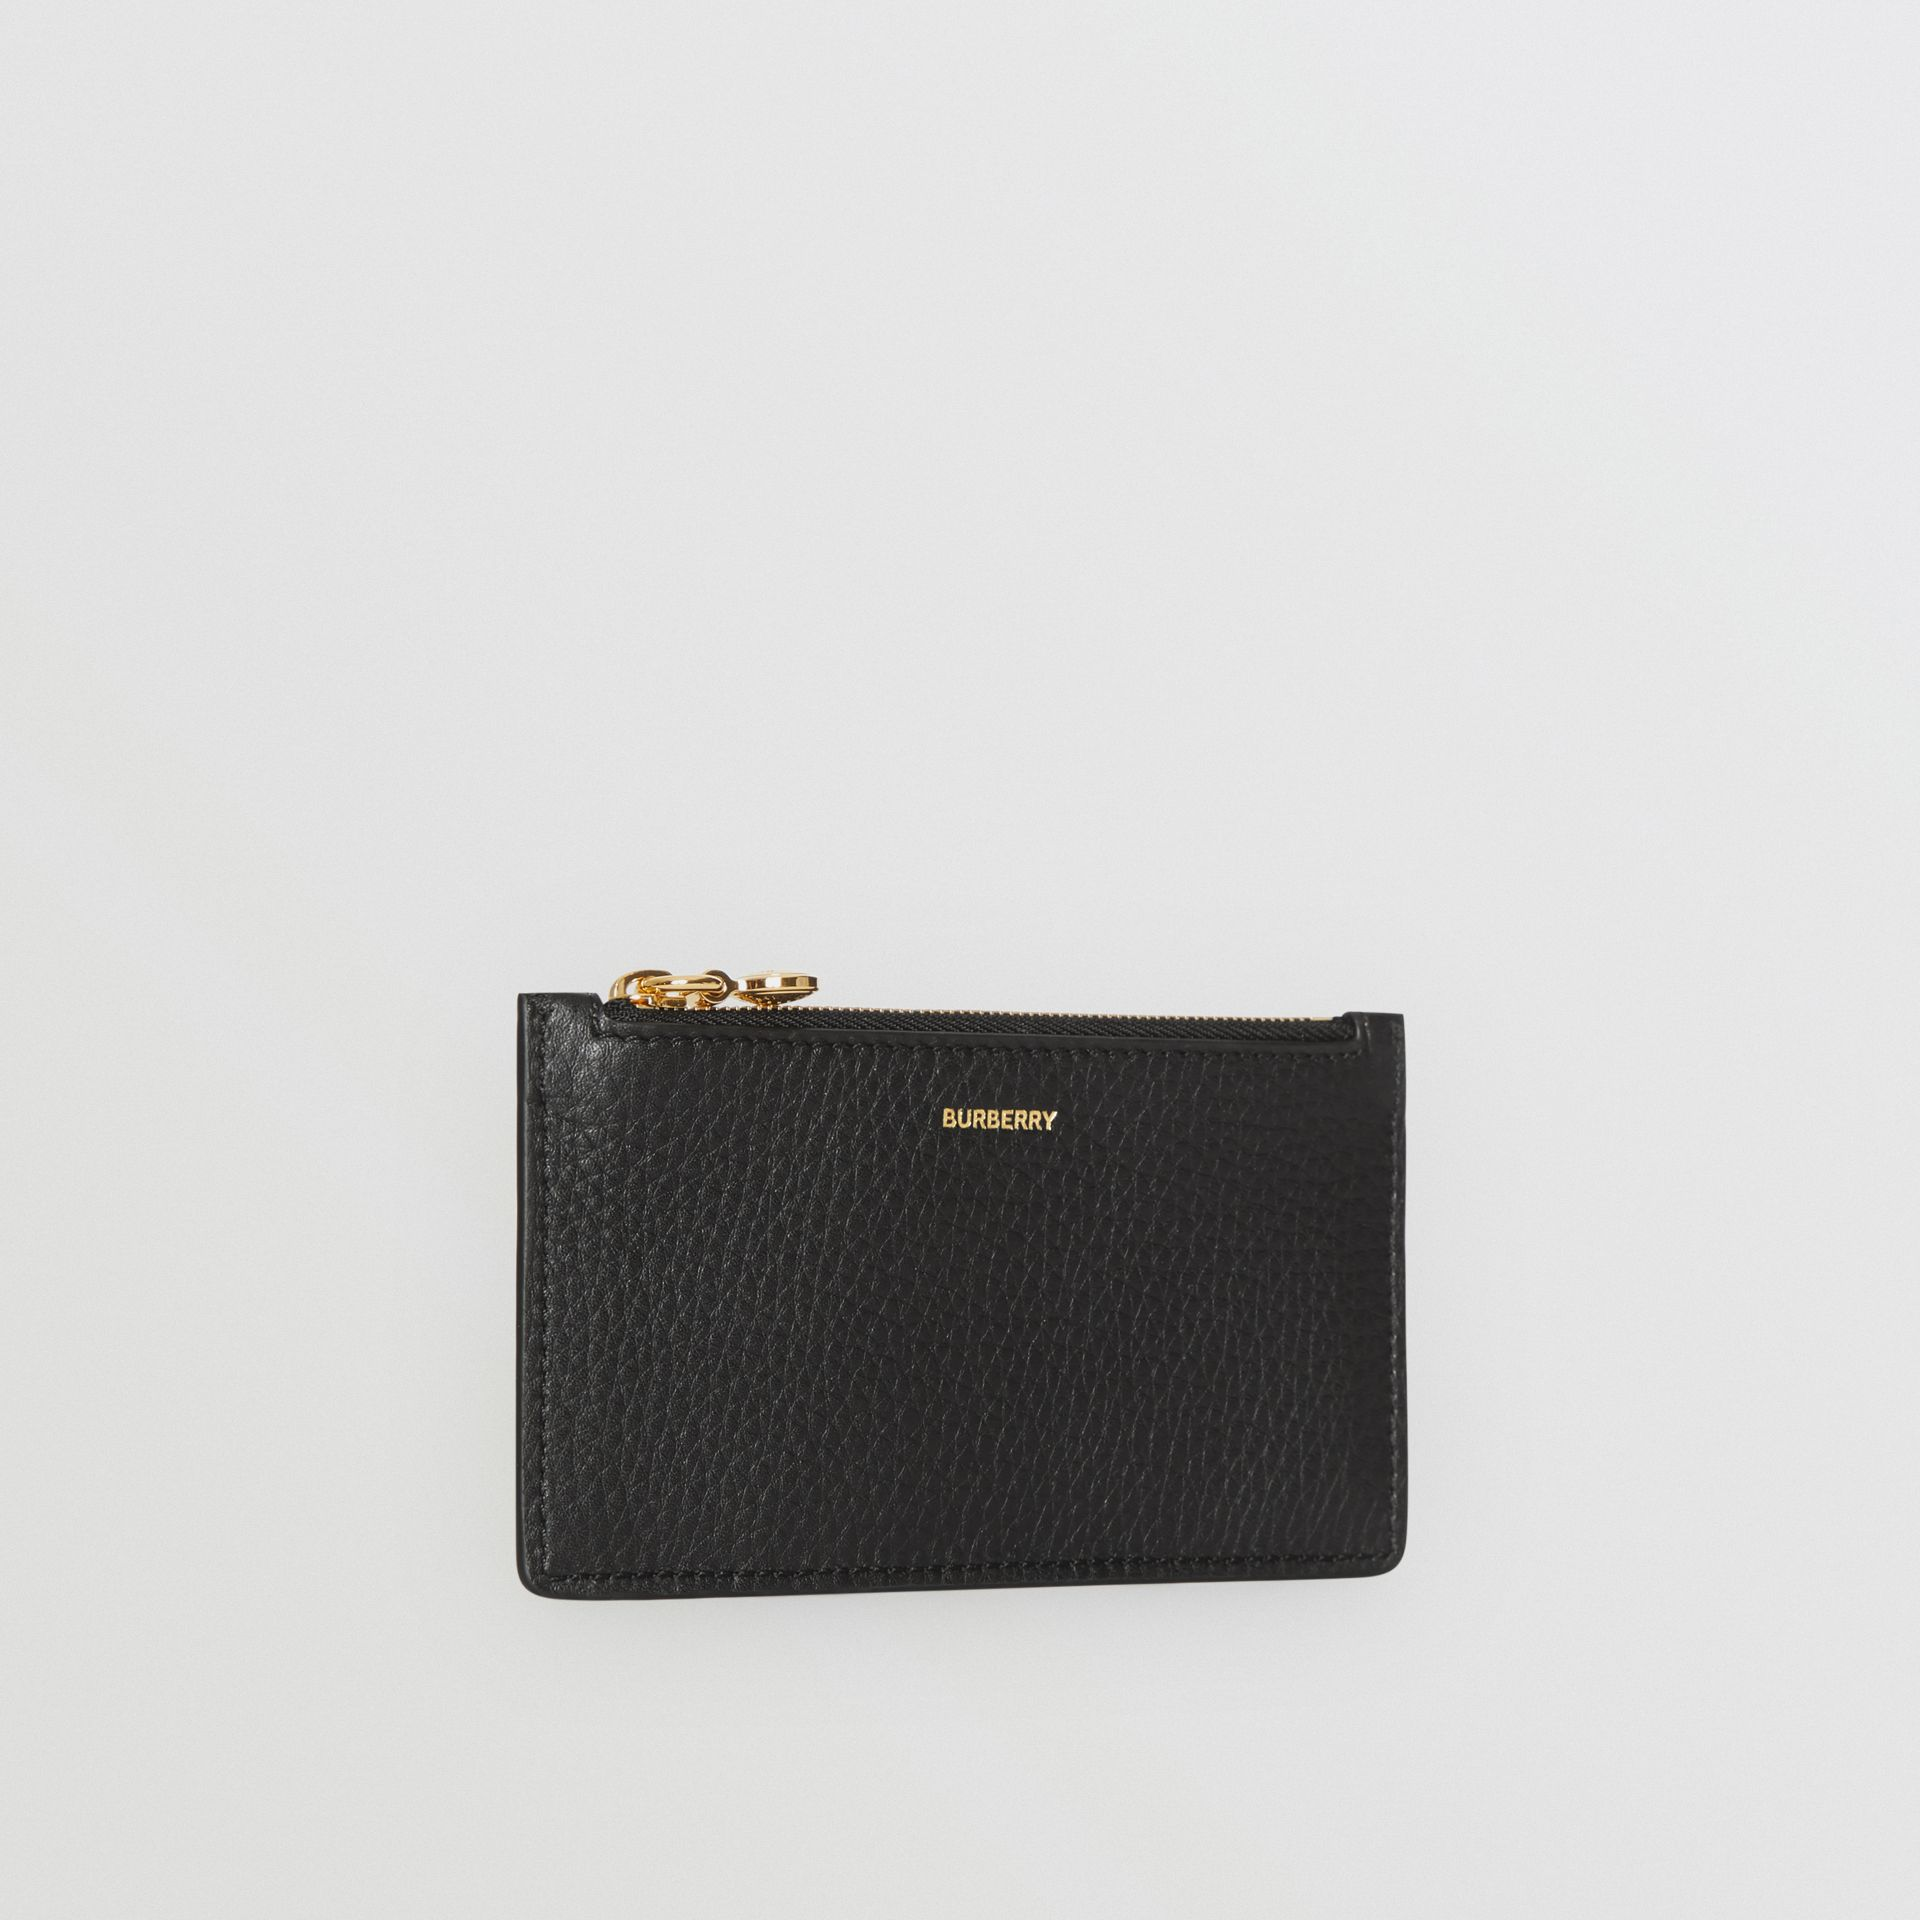 Porte-cartes zippé en cuir (Noir) | Burberry - photo de la galerie 3